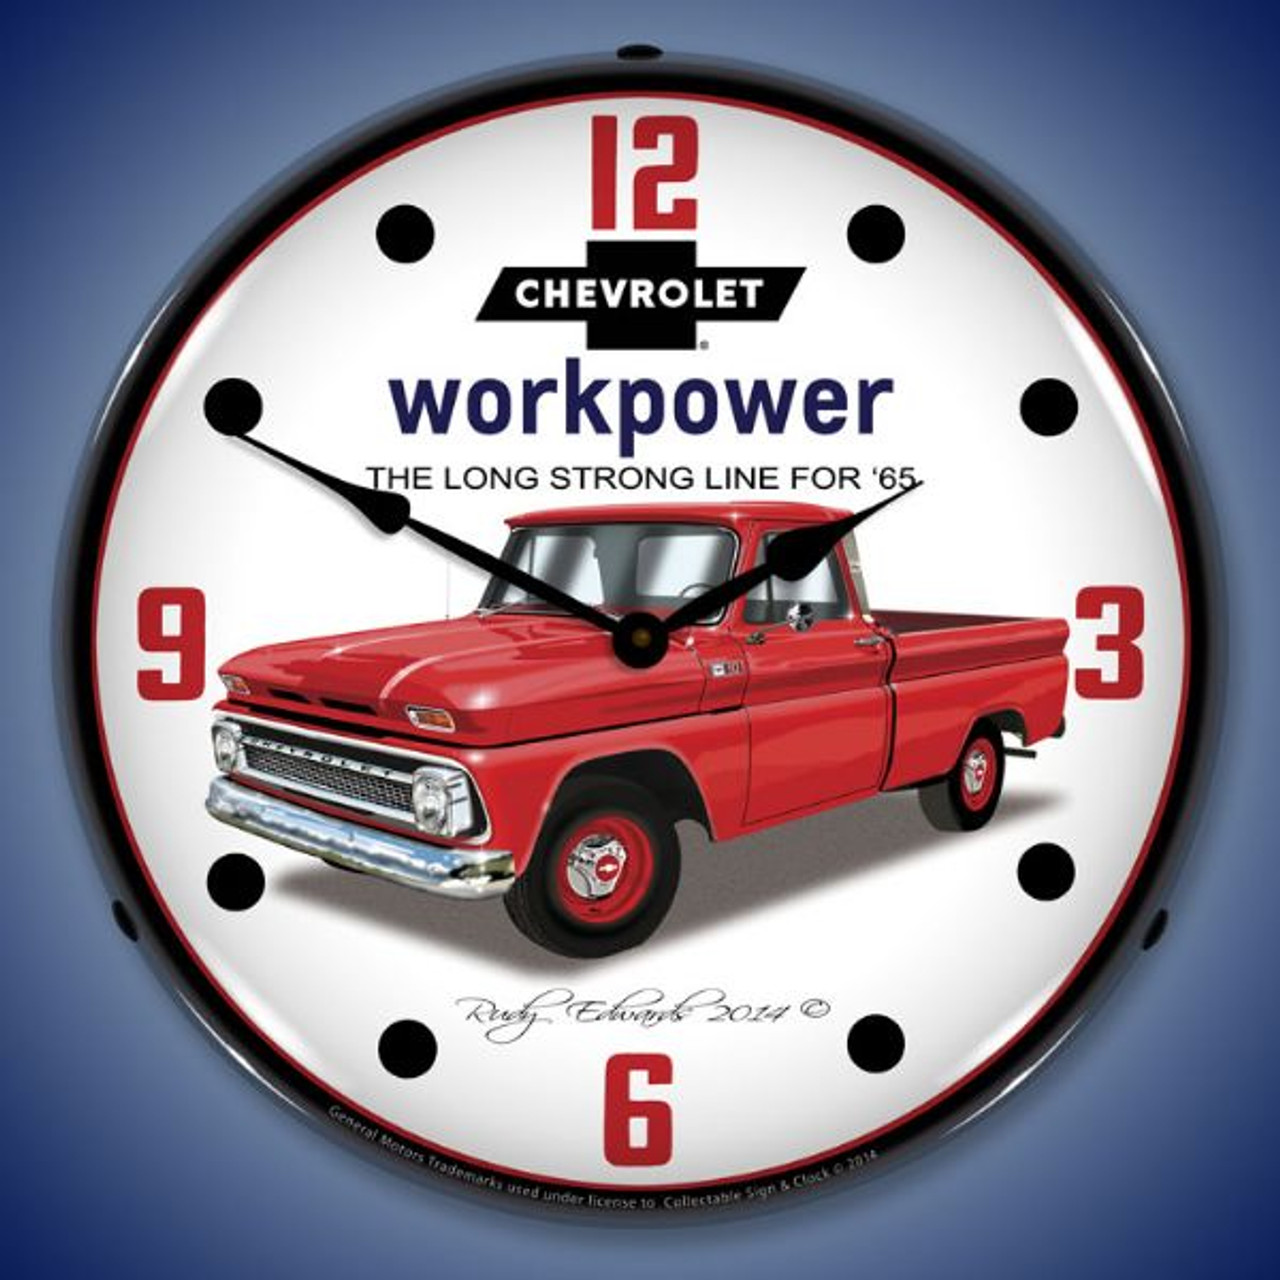 1965 Chevrolet Truck Lighted Wall Clock 14 x 14 Inches